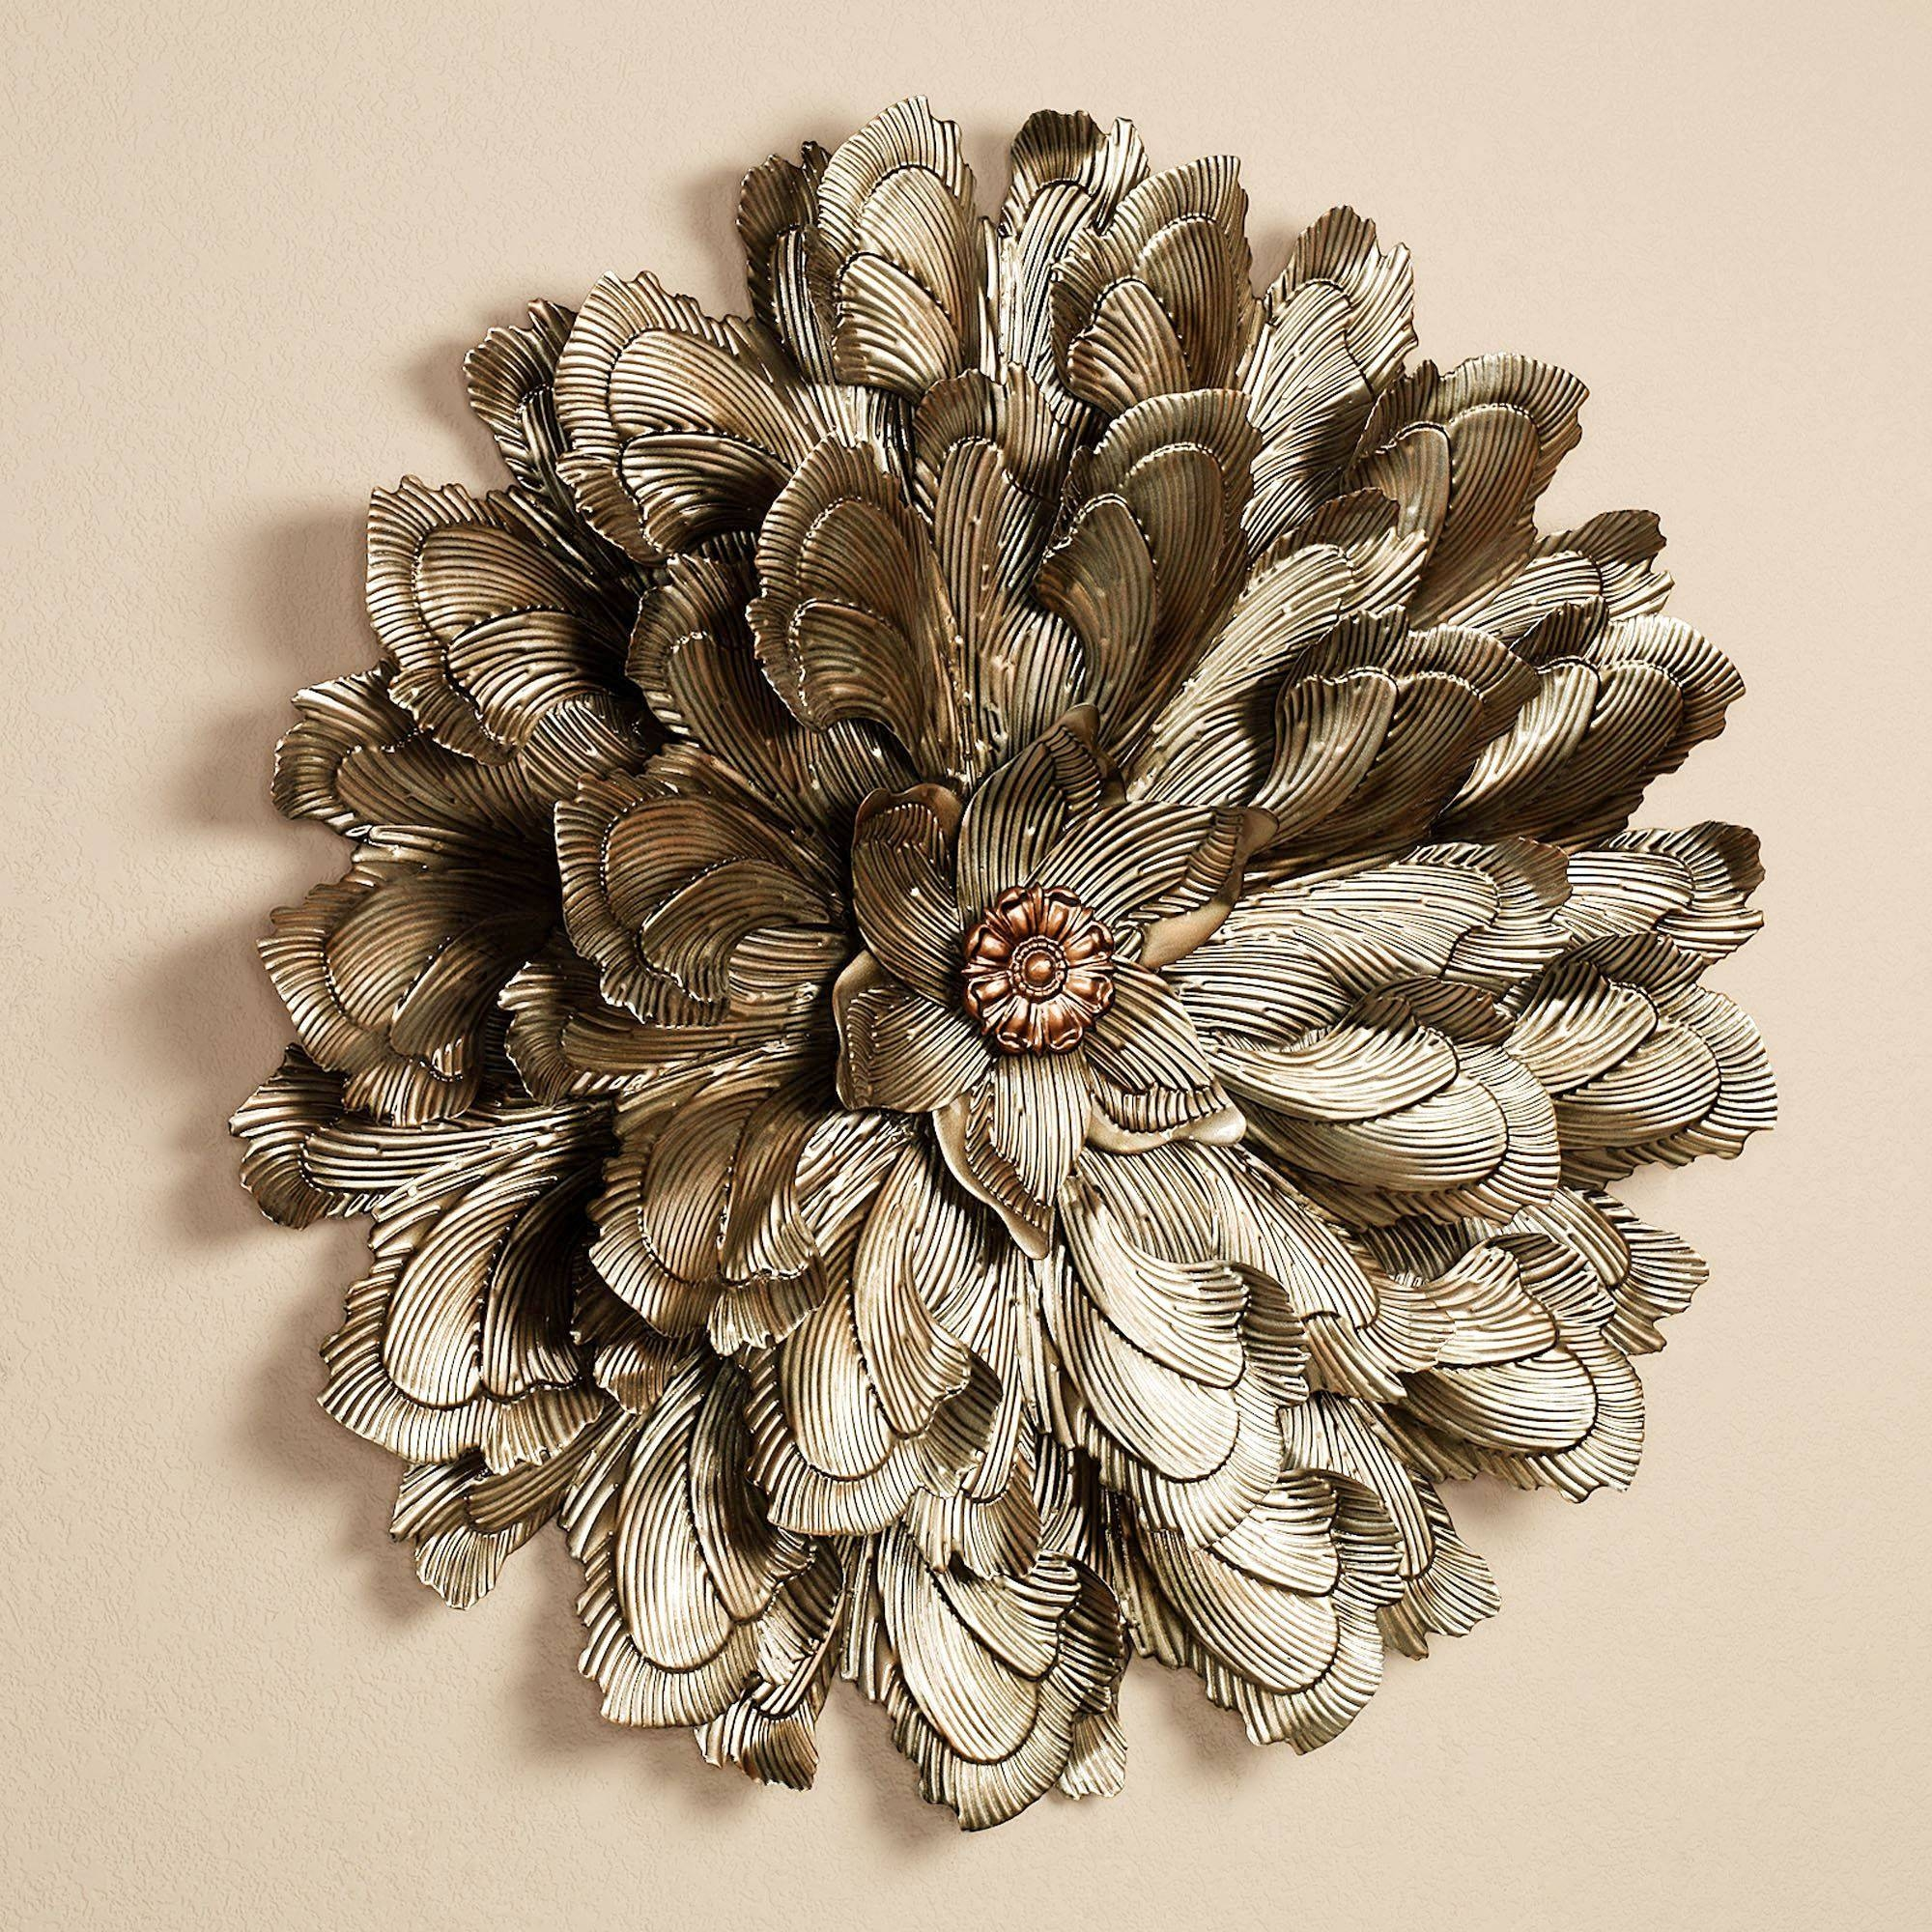 41 Silver Metal Wall Art Flowers, Home Metal Wall Art Wall Decor For Recent Silver Metal Wall Art Flowers (View 2 of 20)